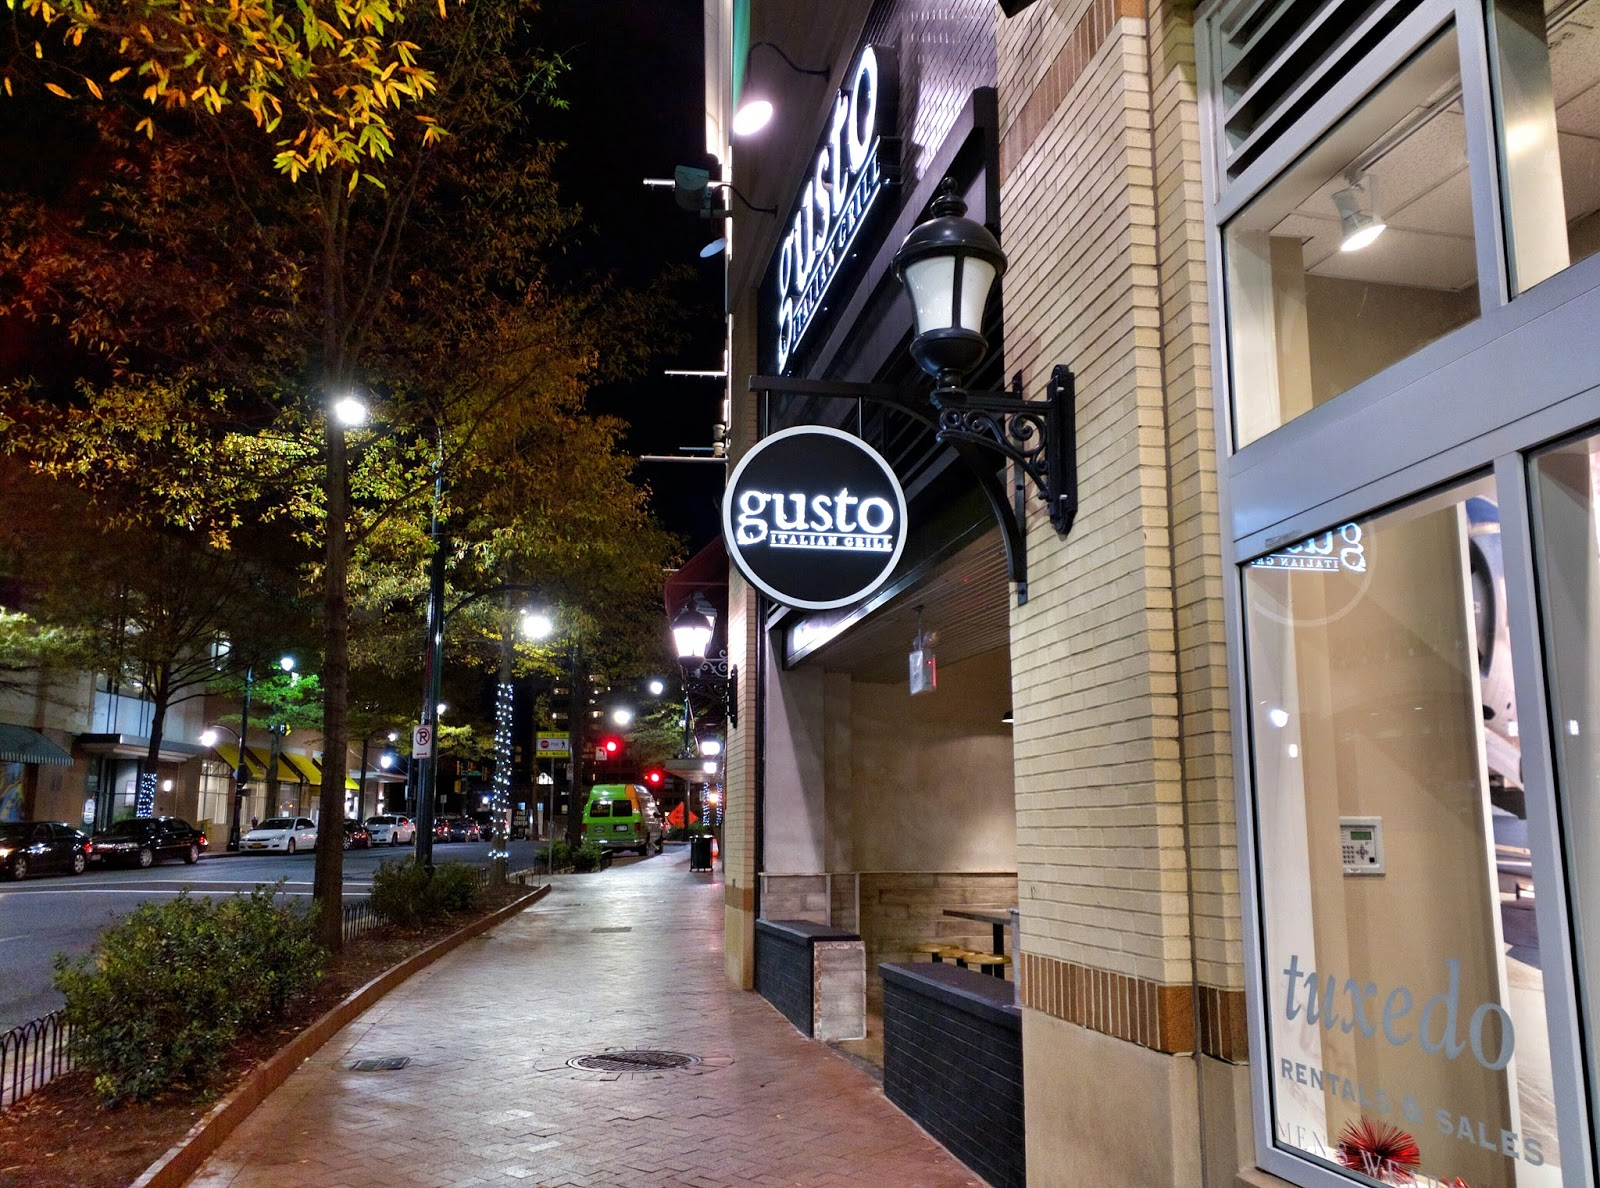 East moco gusto italian grill opens in silver spring photos for Silver spring italian kitchen